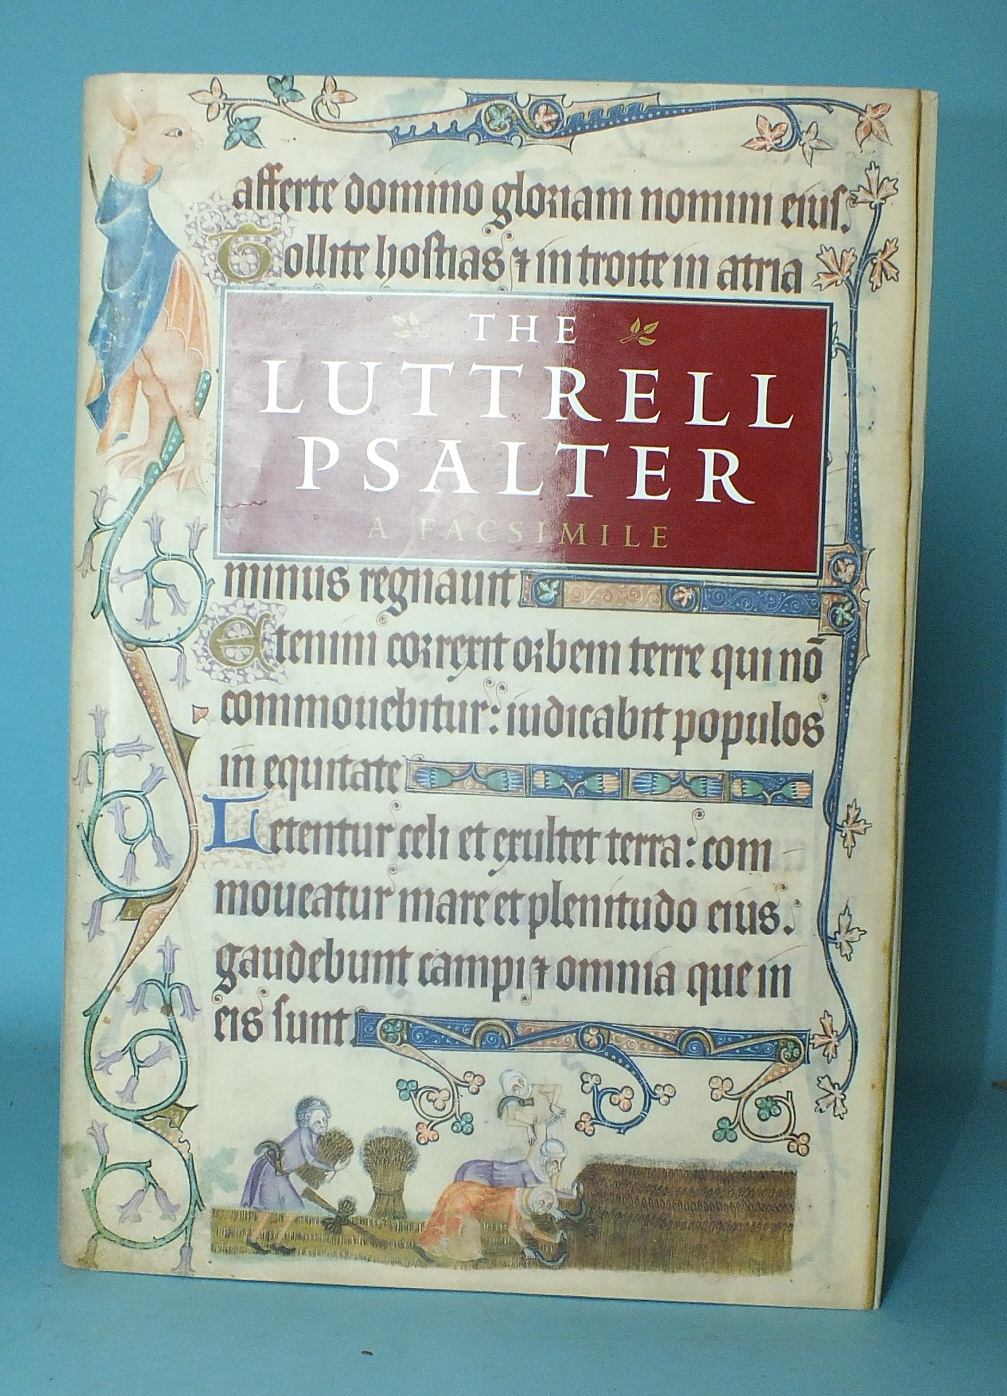 Lot 166 - The Luttrell Psalter, facsimile, commentary by Michelle P Brown, pub: British Library, dwrps, cl gt,